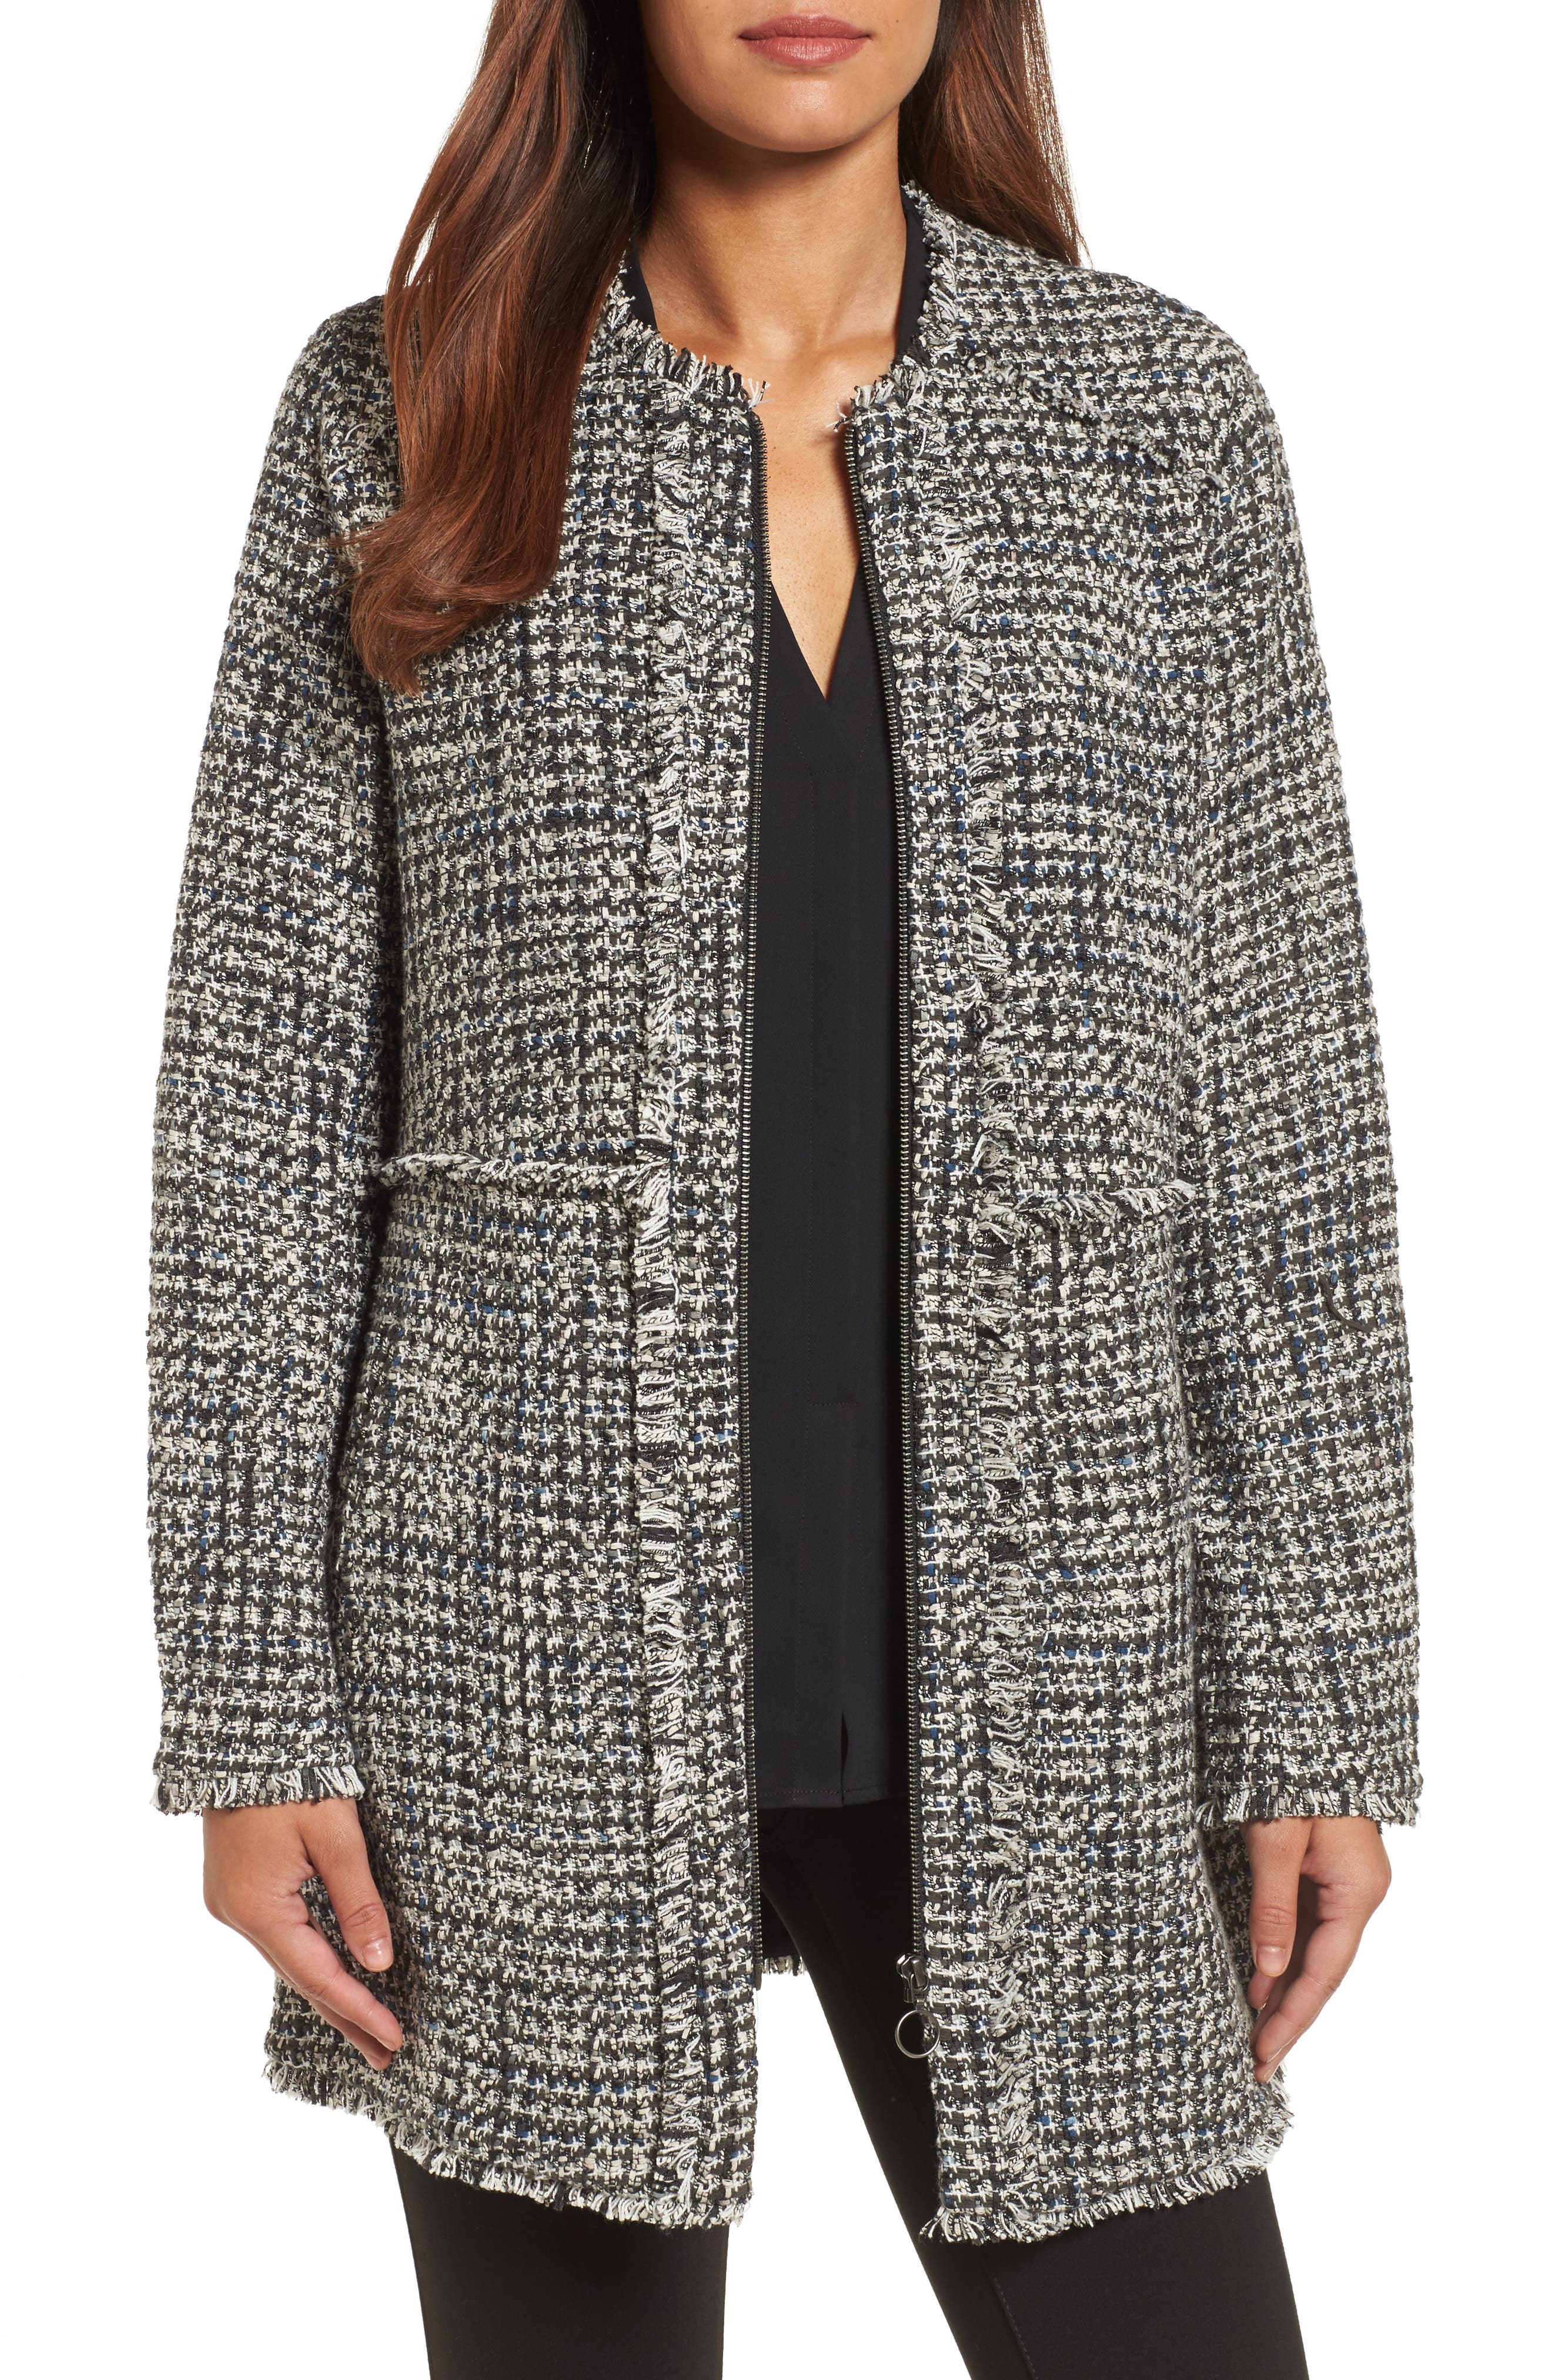 Alternate Image 1 Selected - NIC + Zoe Speckled Tweed Jacket